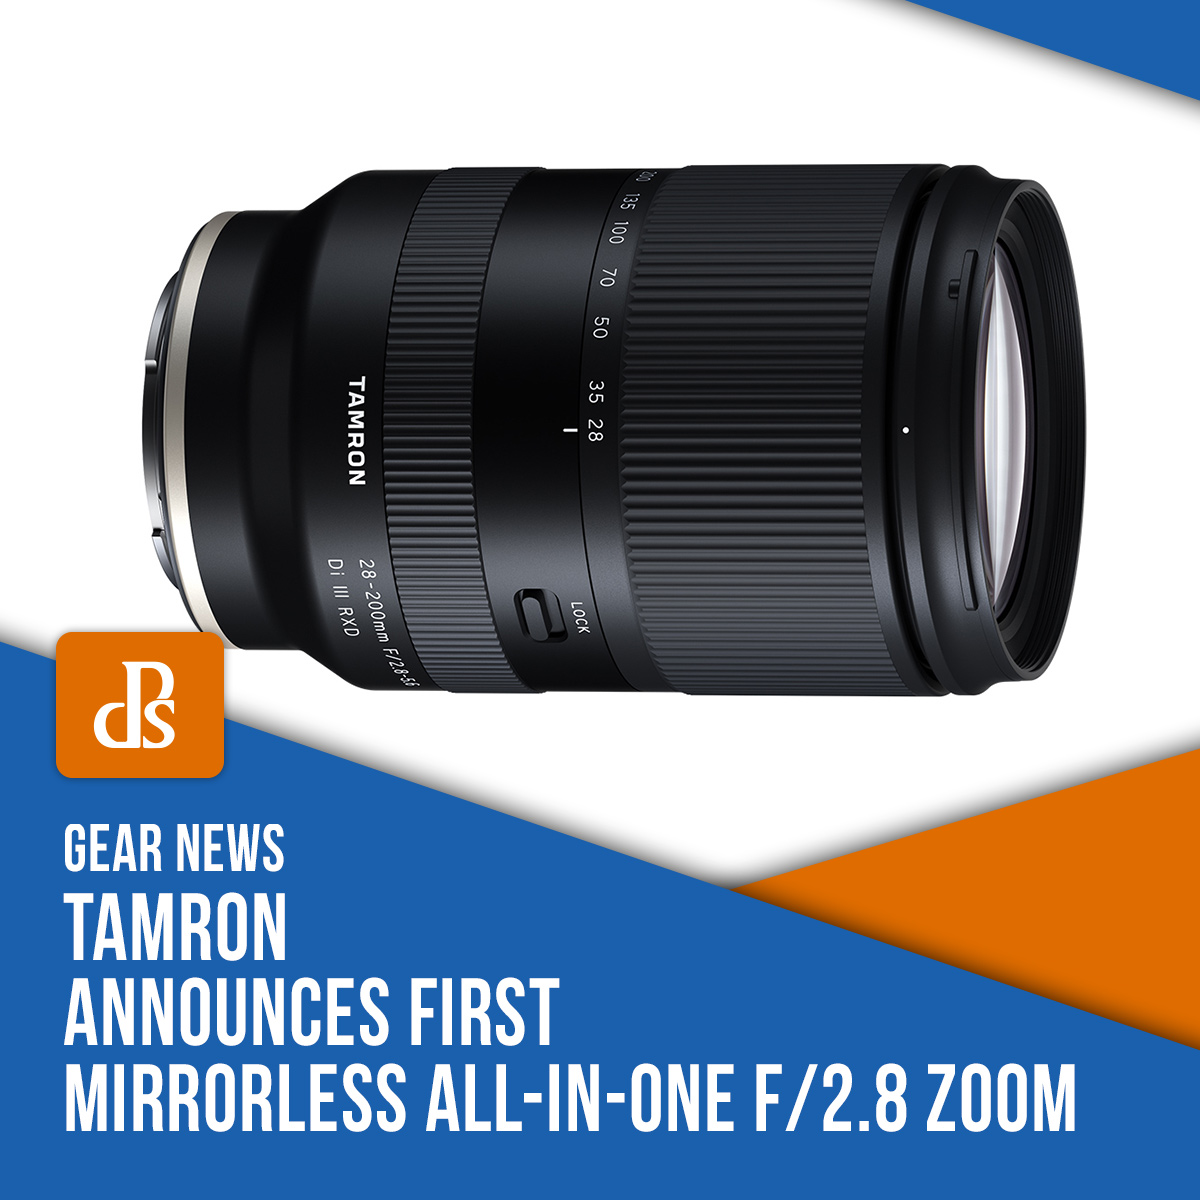 Tamron f/2.8 zoom lens announced